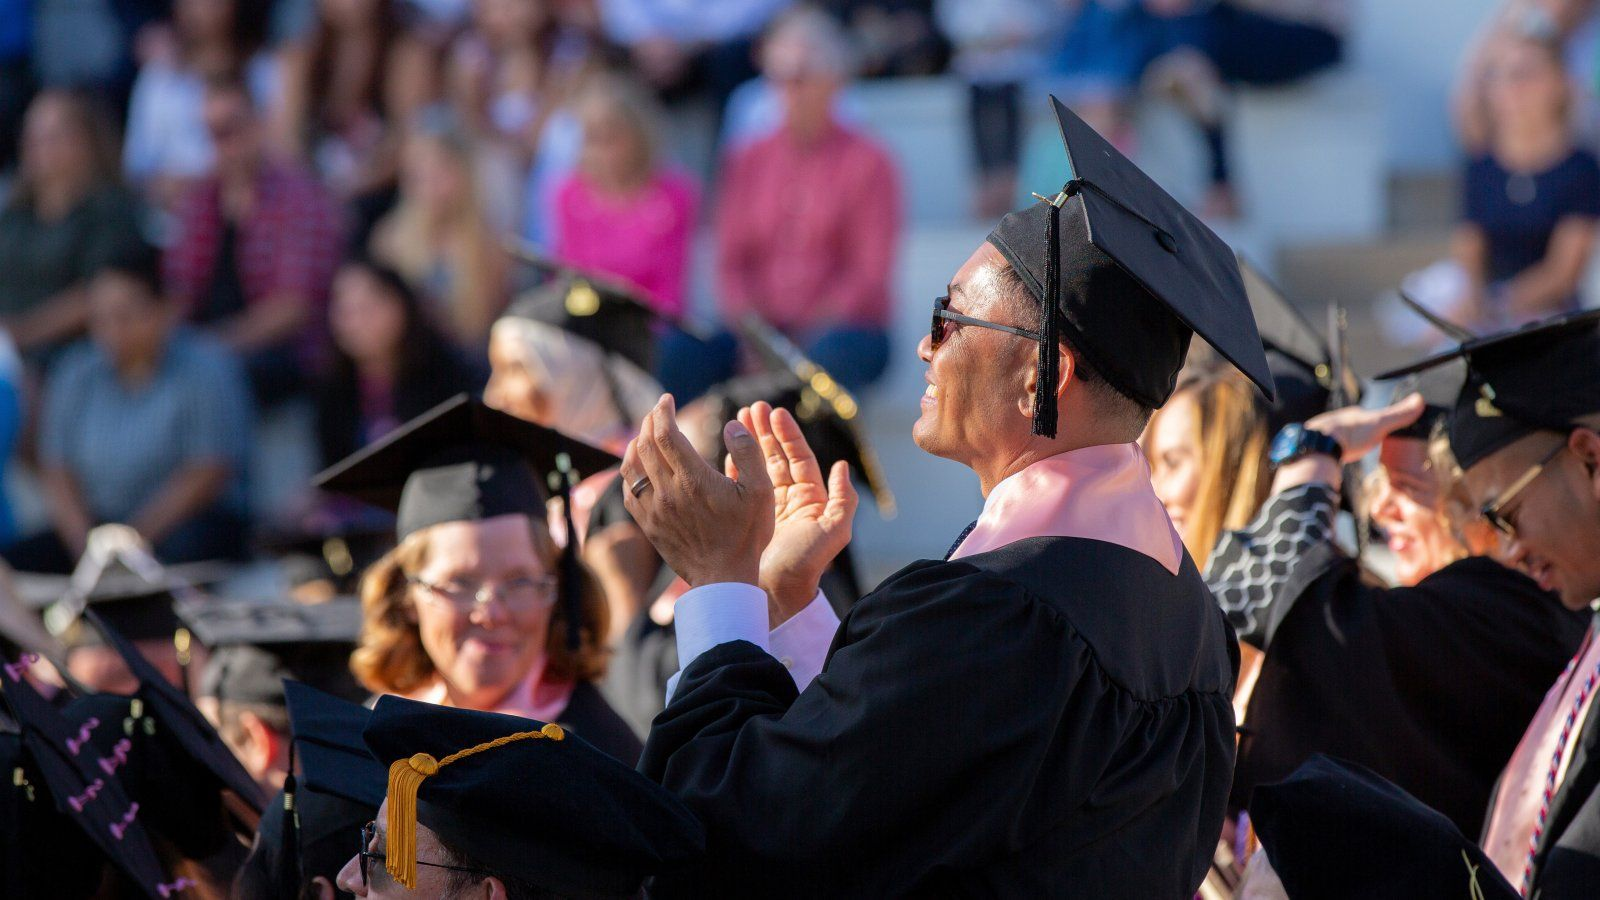 Male graduate student applauding during commencement